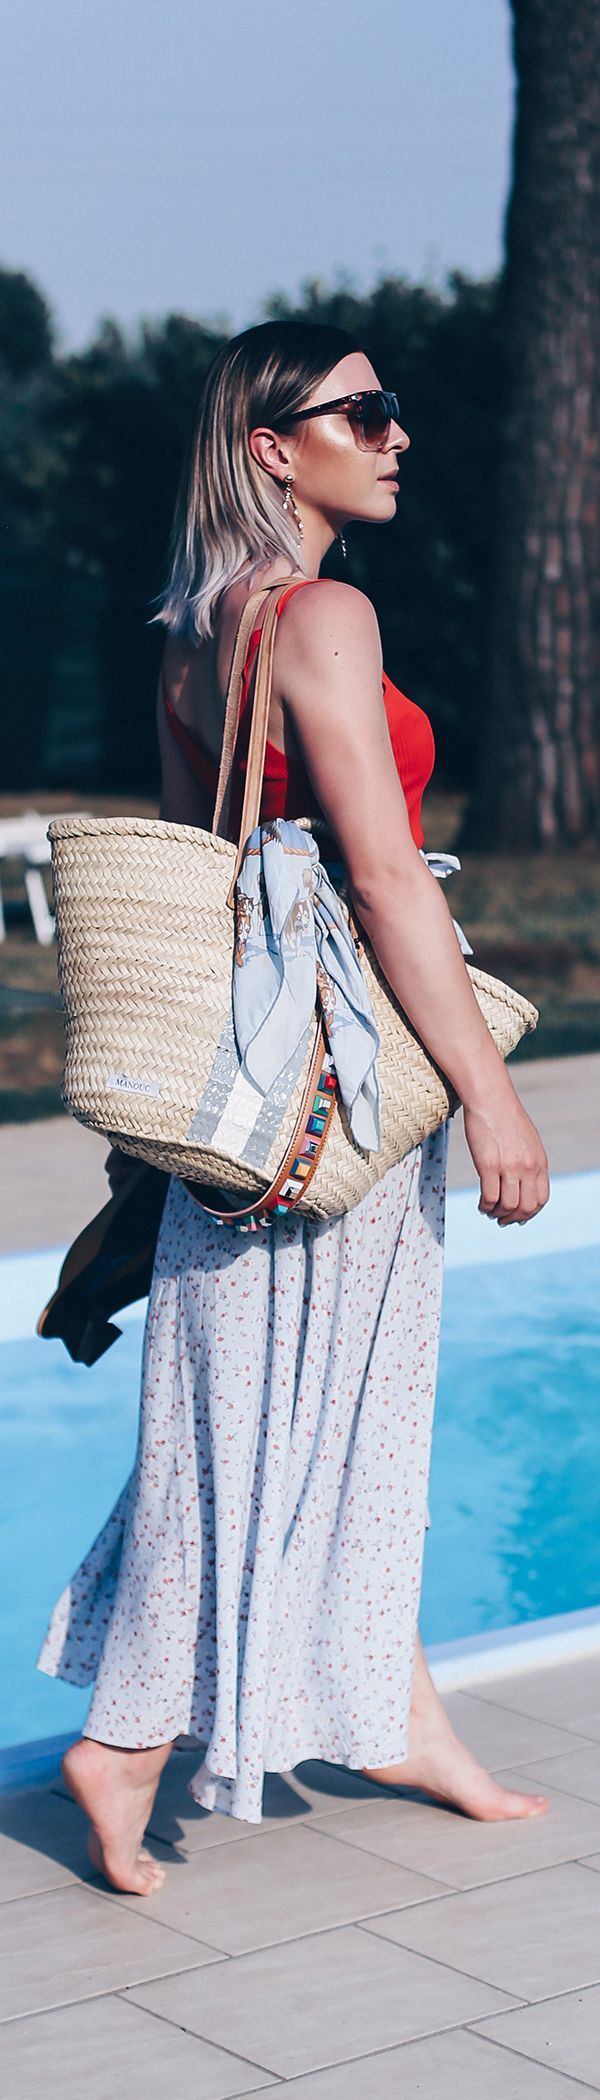 #Pooltime! Lockeres Sommer Outfit mit Wickelrock und XL-Korbtasche – Who is Mocca? – Fashion Trends, Outfits, Interior Inspiration, Beauty Tipps und Karriere Guides